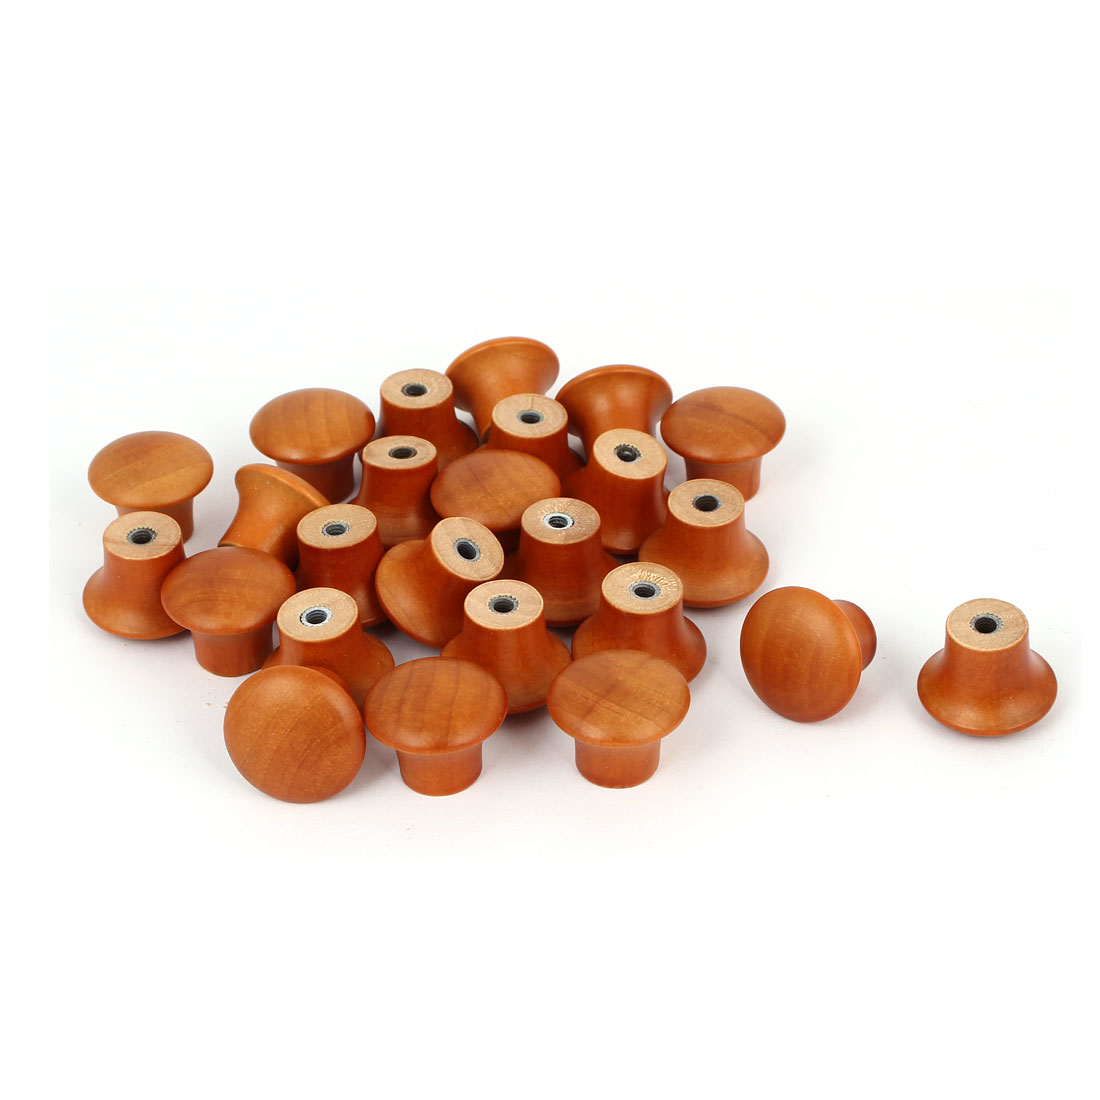 Pre-drilled Wooden Door Drawer Cupboard Knobs Handles 23x17mm Brown 25pcs